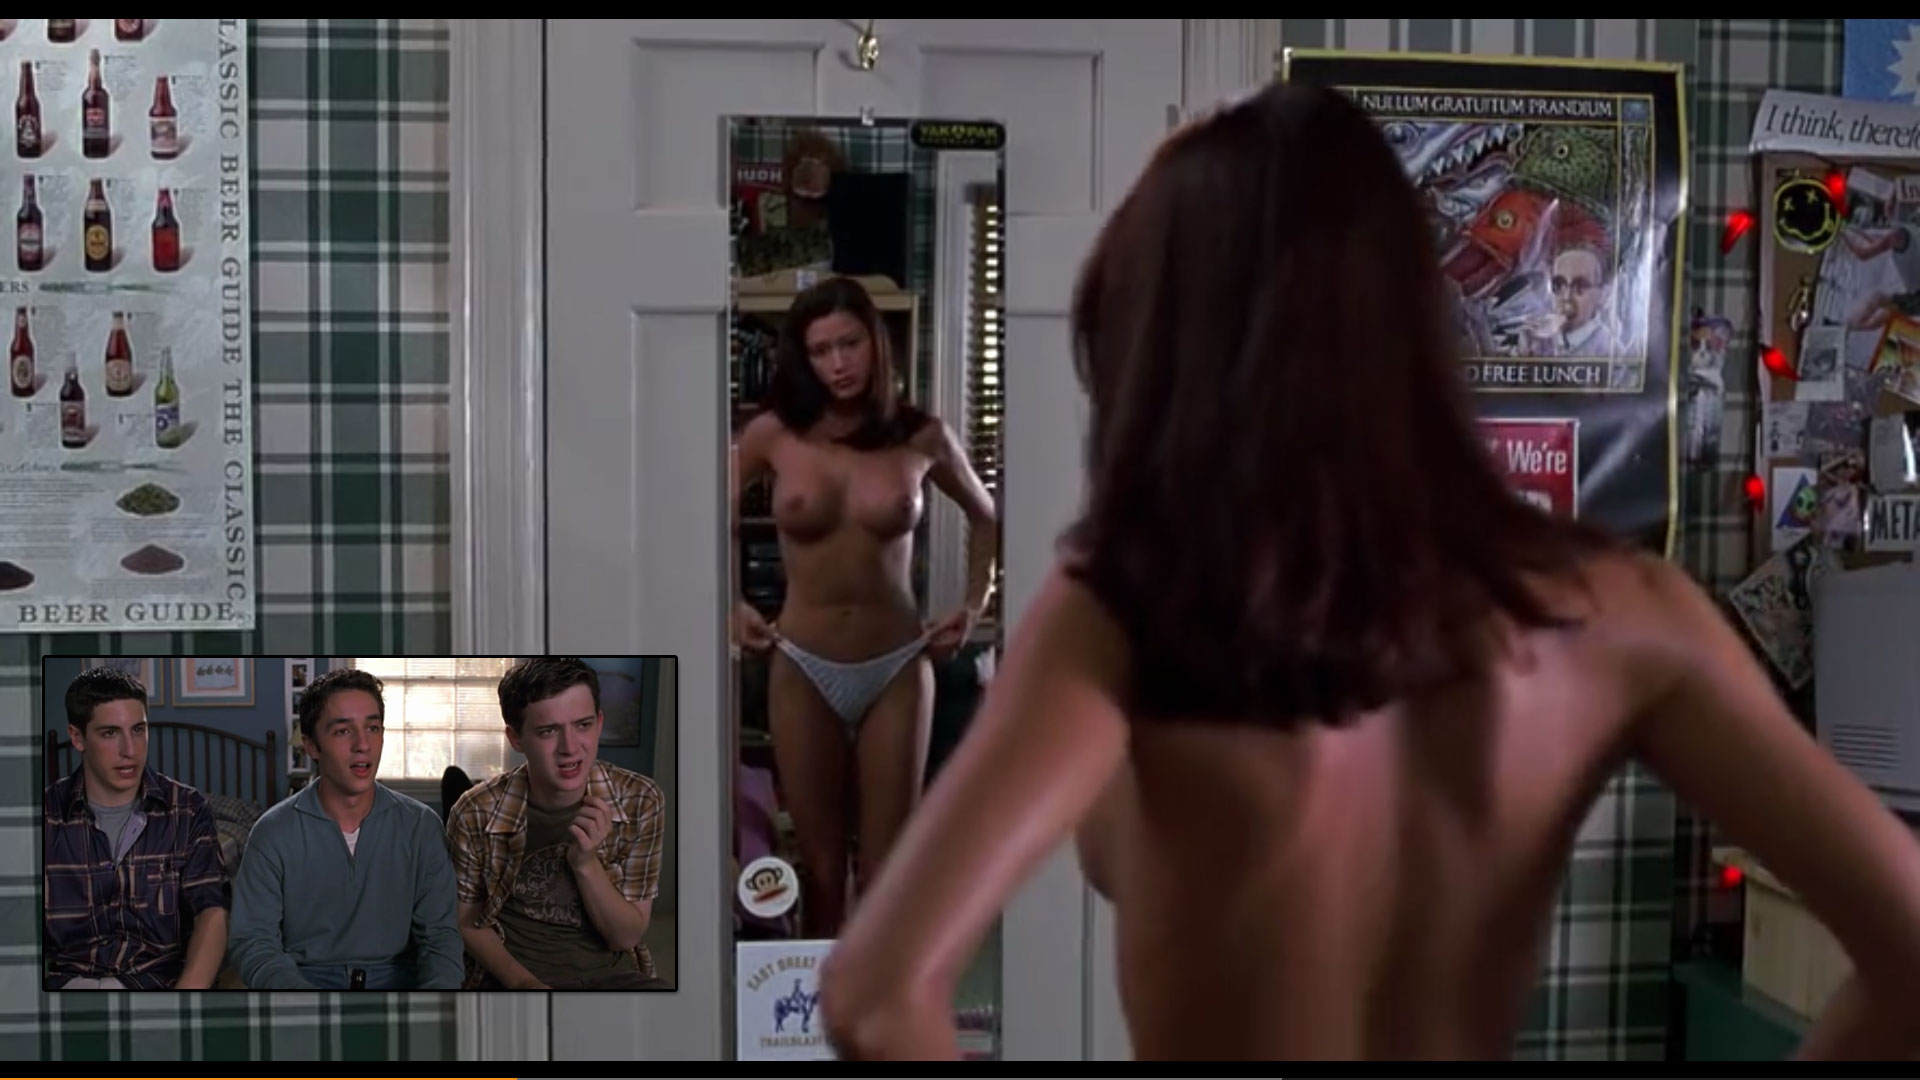 Naked & Nostalgic scene from American Pie (1999)